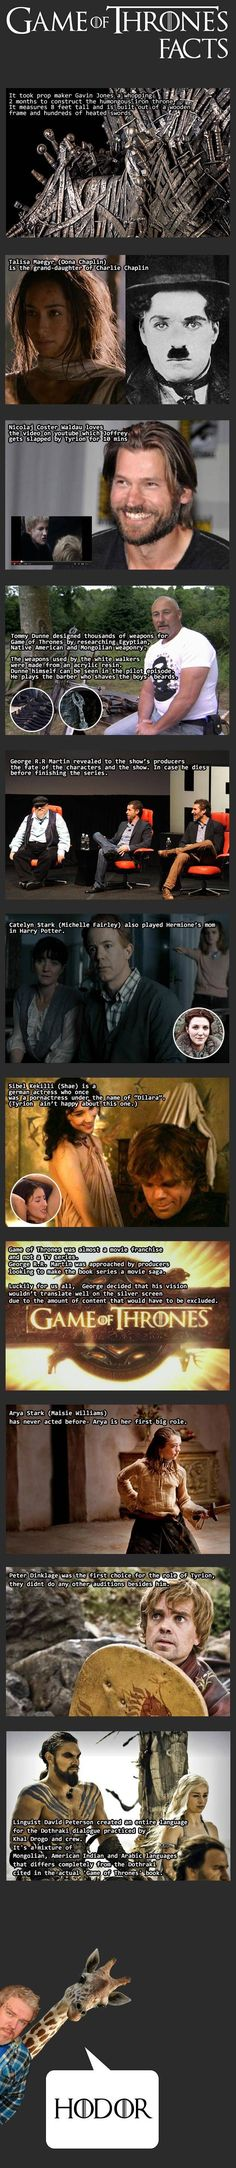 Game of Thrones Facts: Love the end...